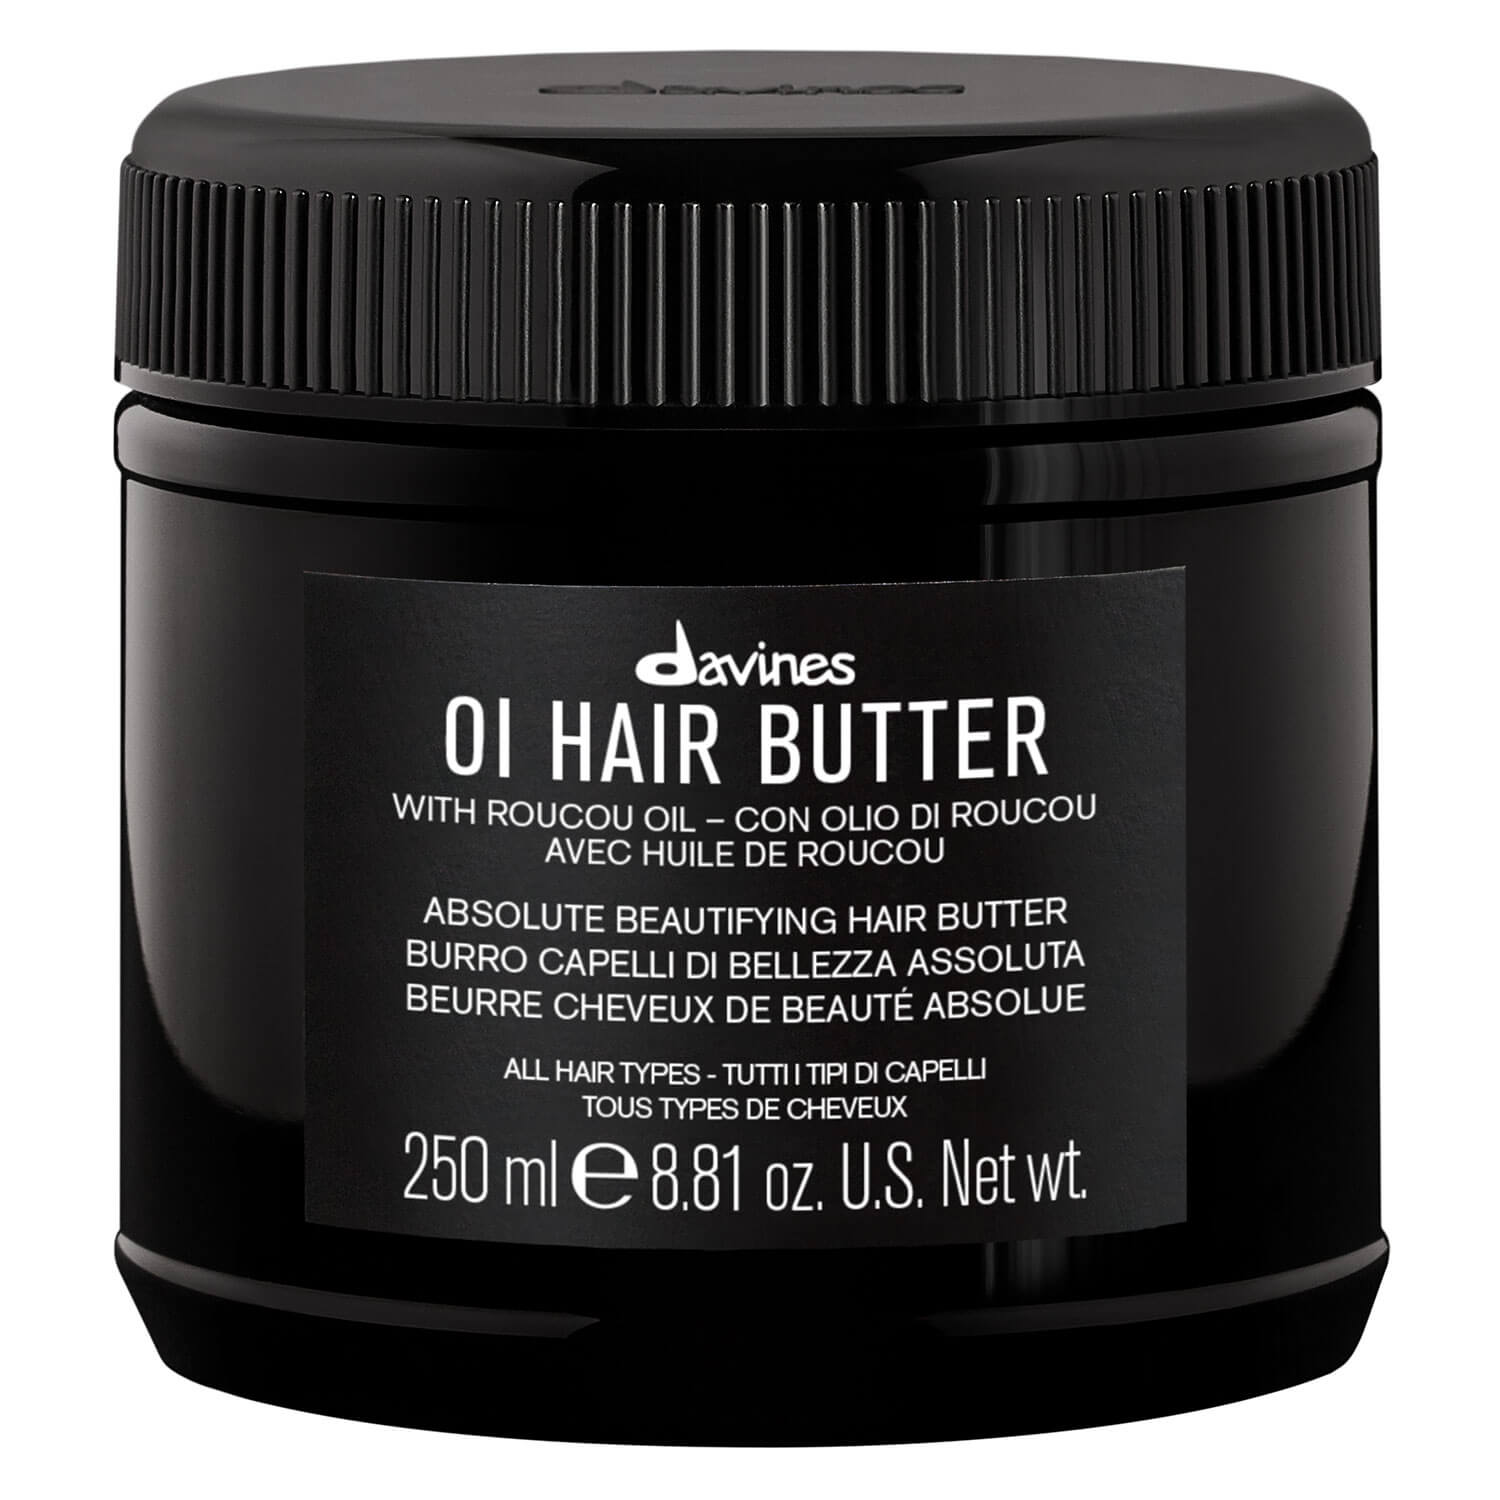 Oi - Hair Butter